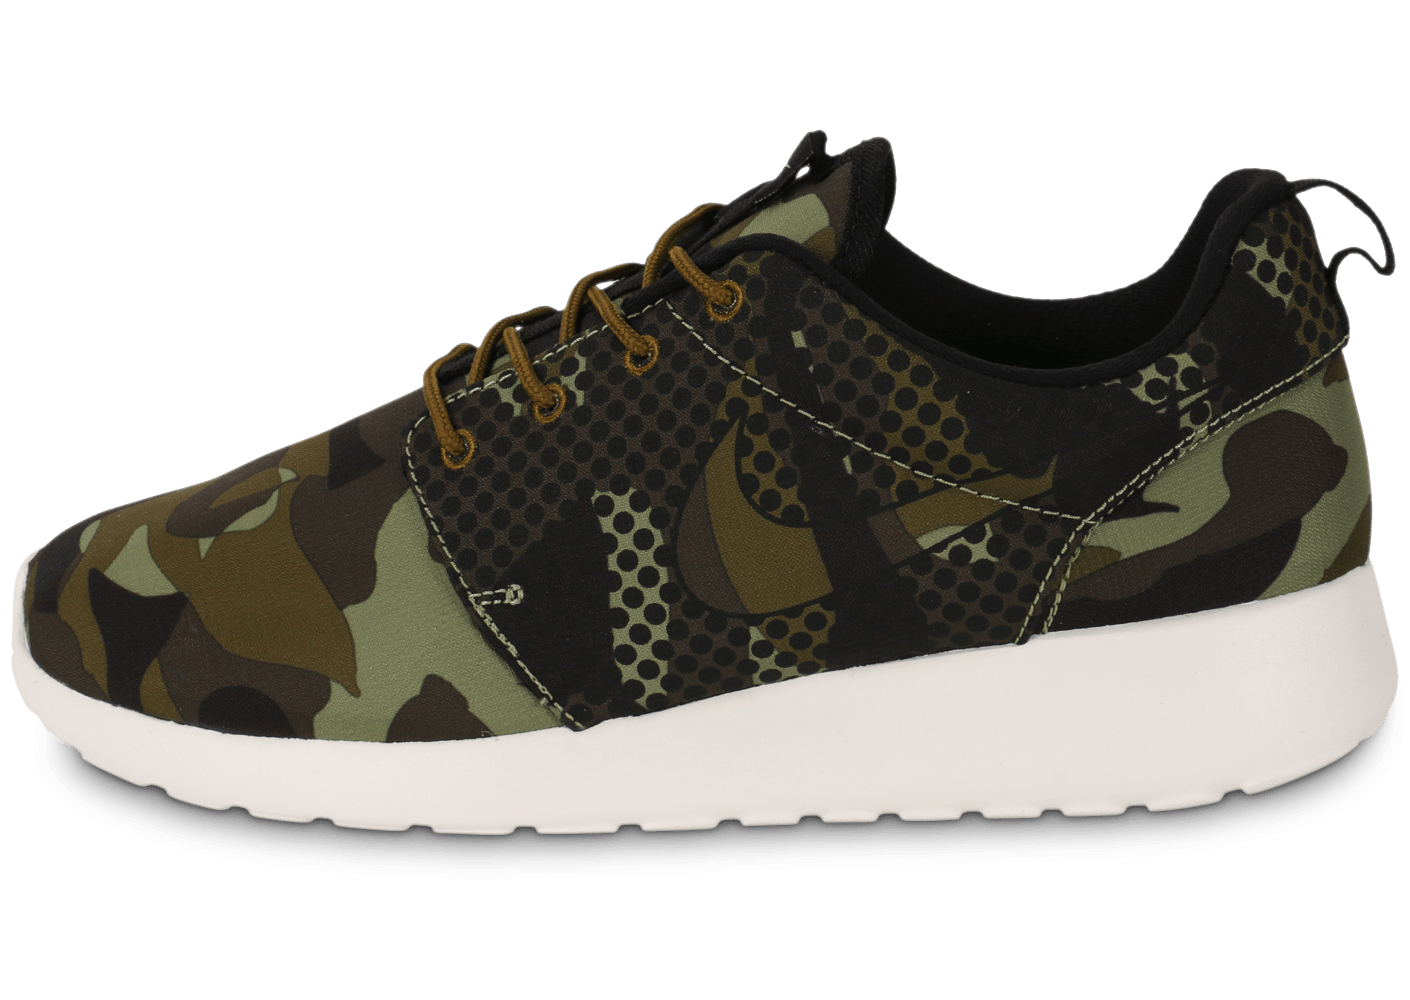 nike roshe one print camo kaki chaussures homme chausport. Black Bedroom Furniture Sets. Home Design Ideas